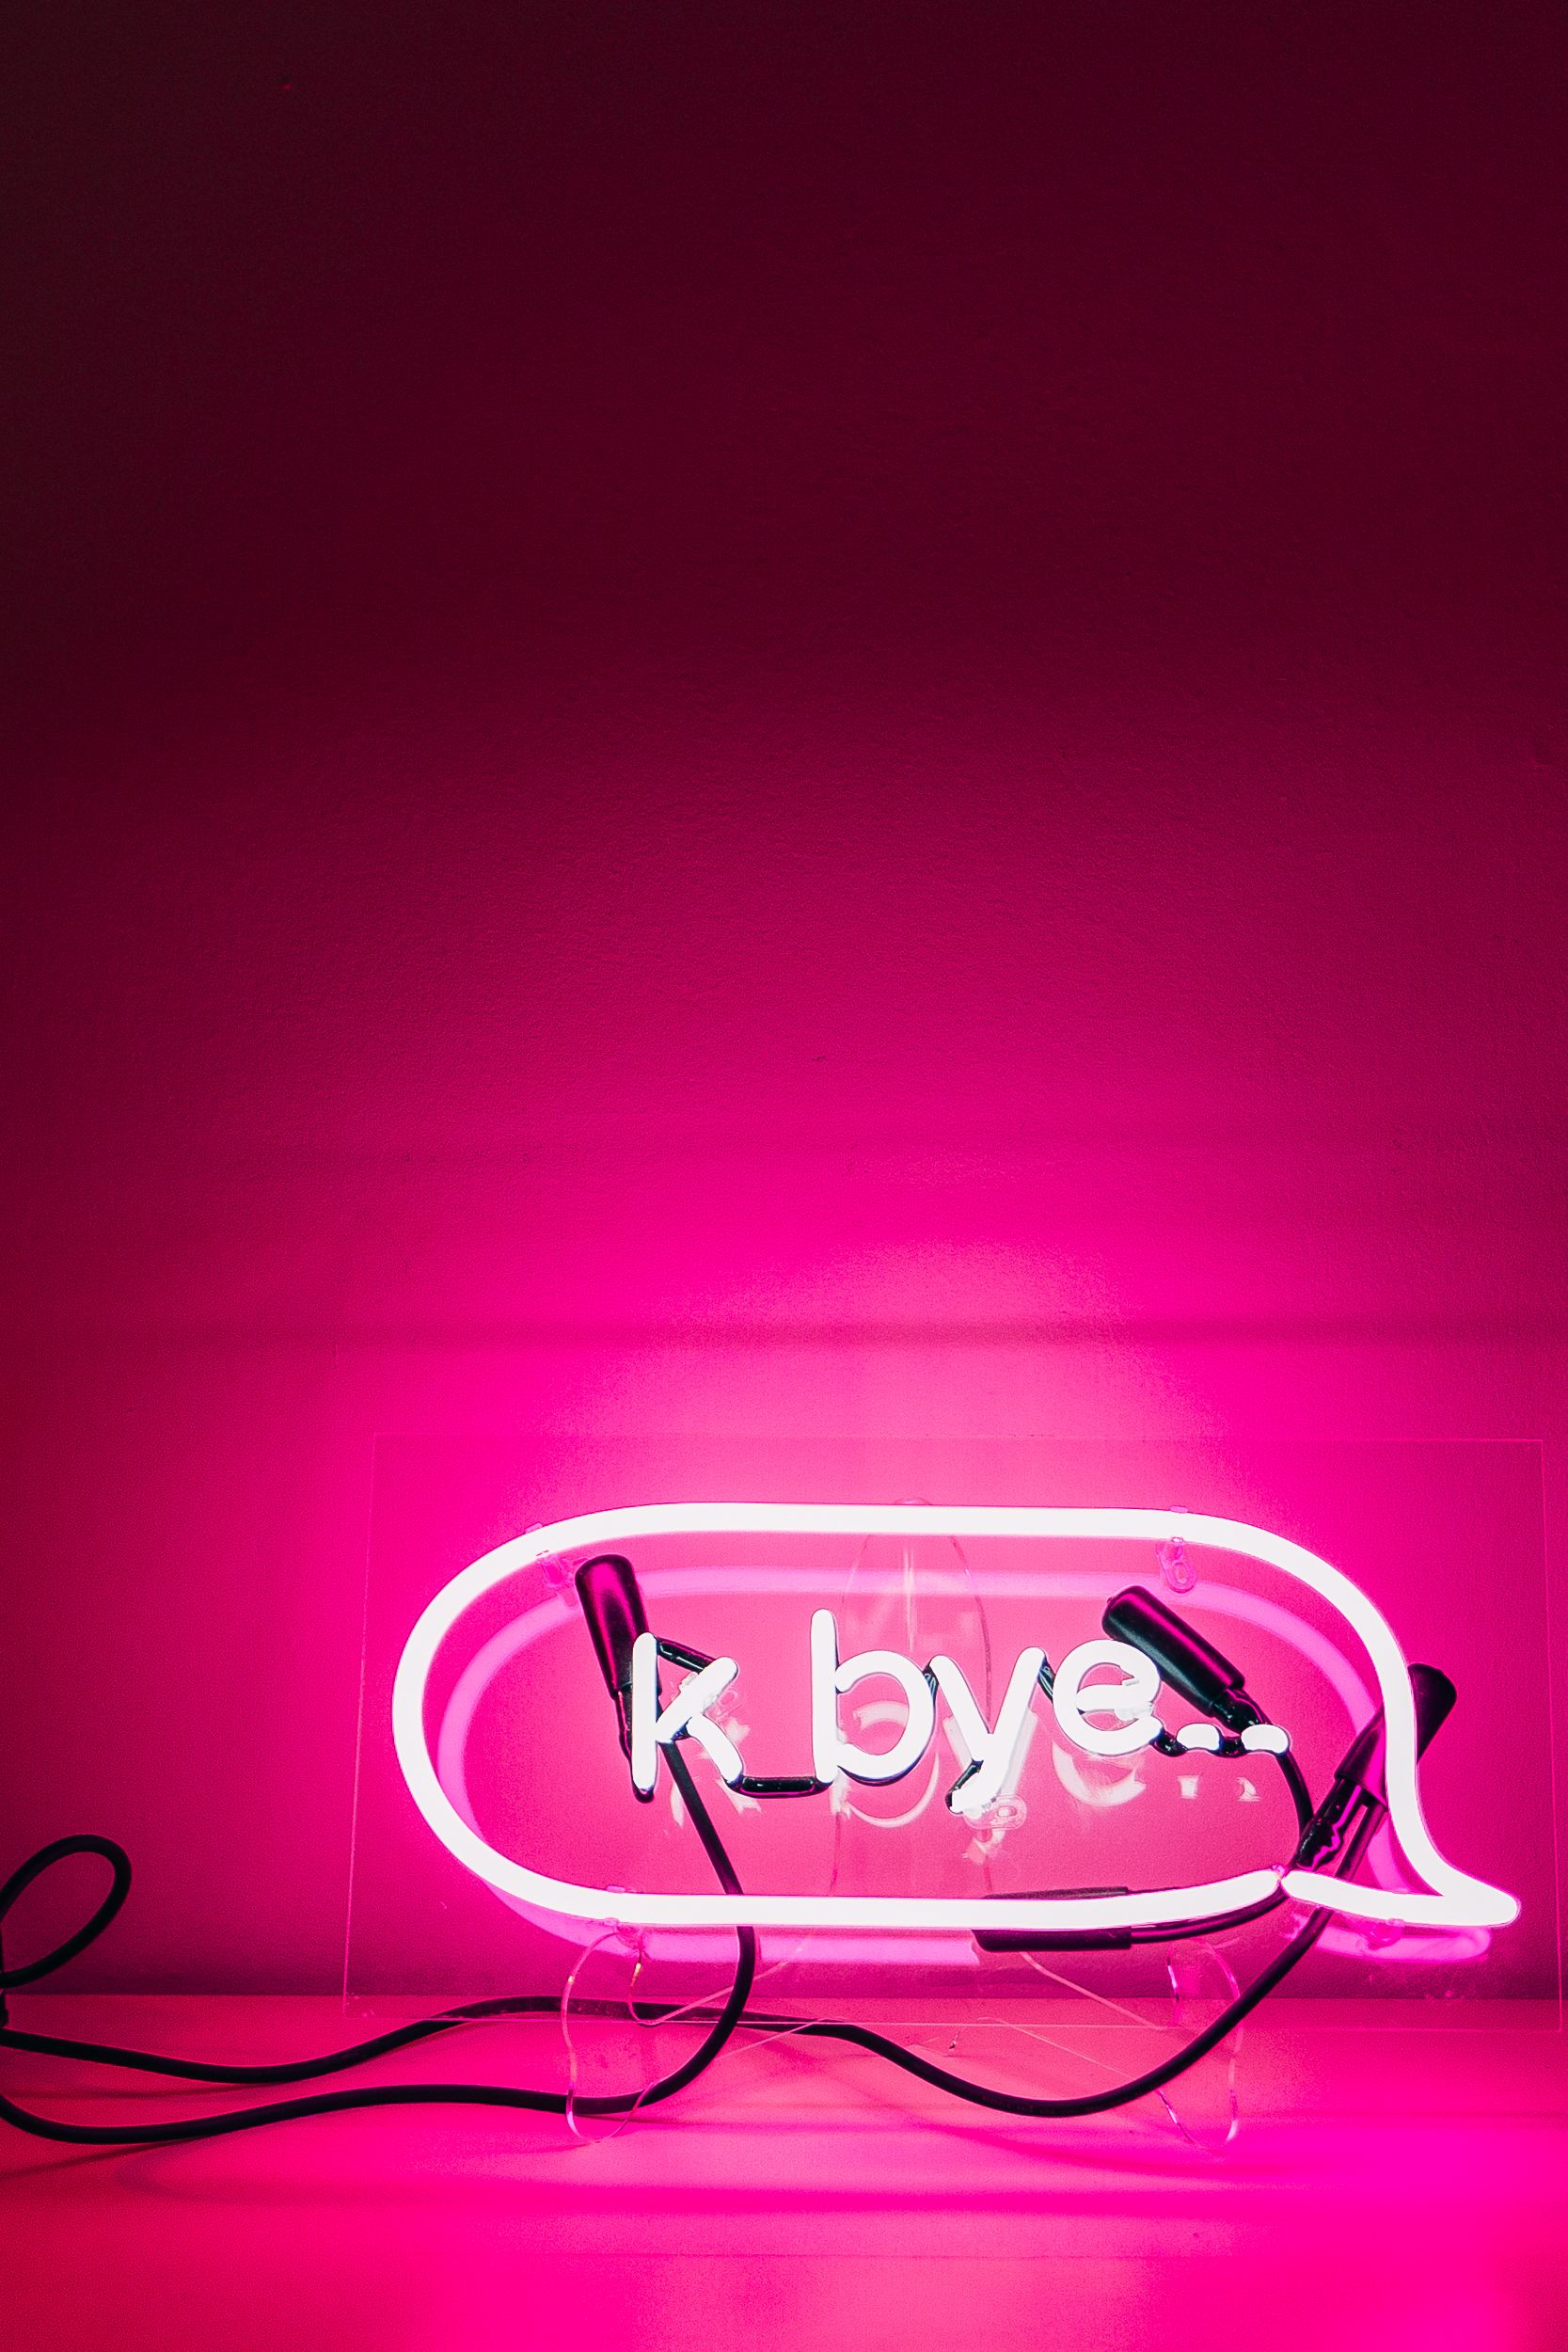 UO Interviews Chrissie Miller Neon wallpaper, Neon